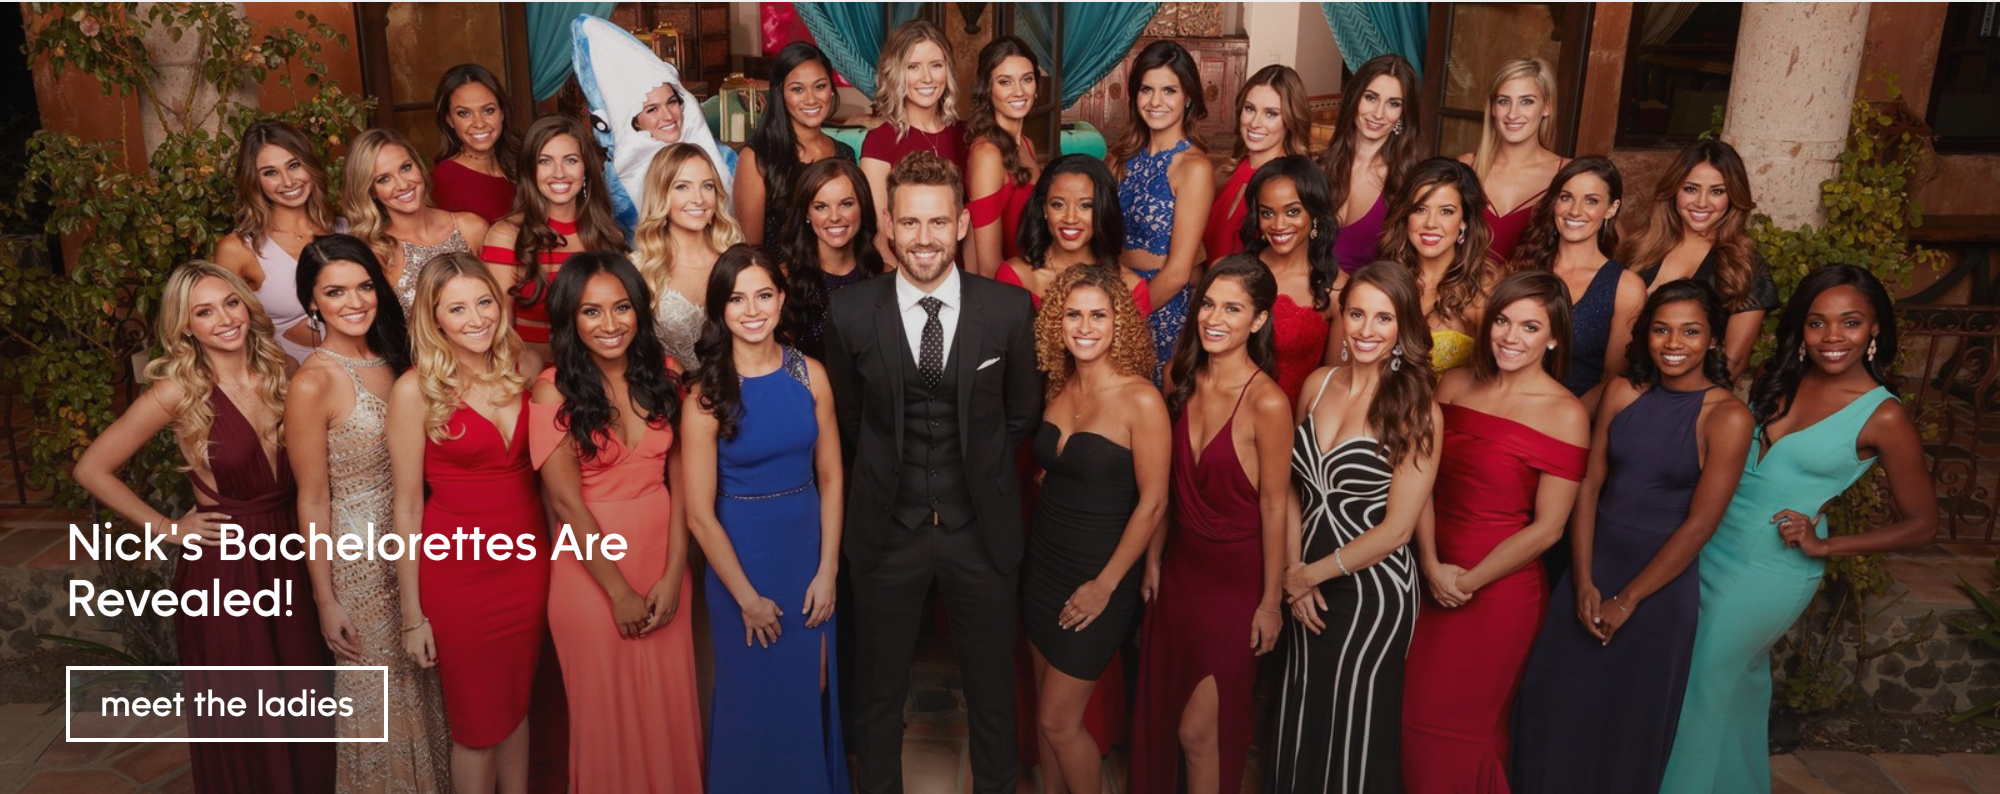 Ranking The Bachelor Contestants By Betchiness